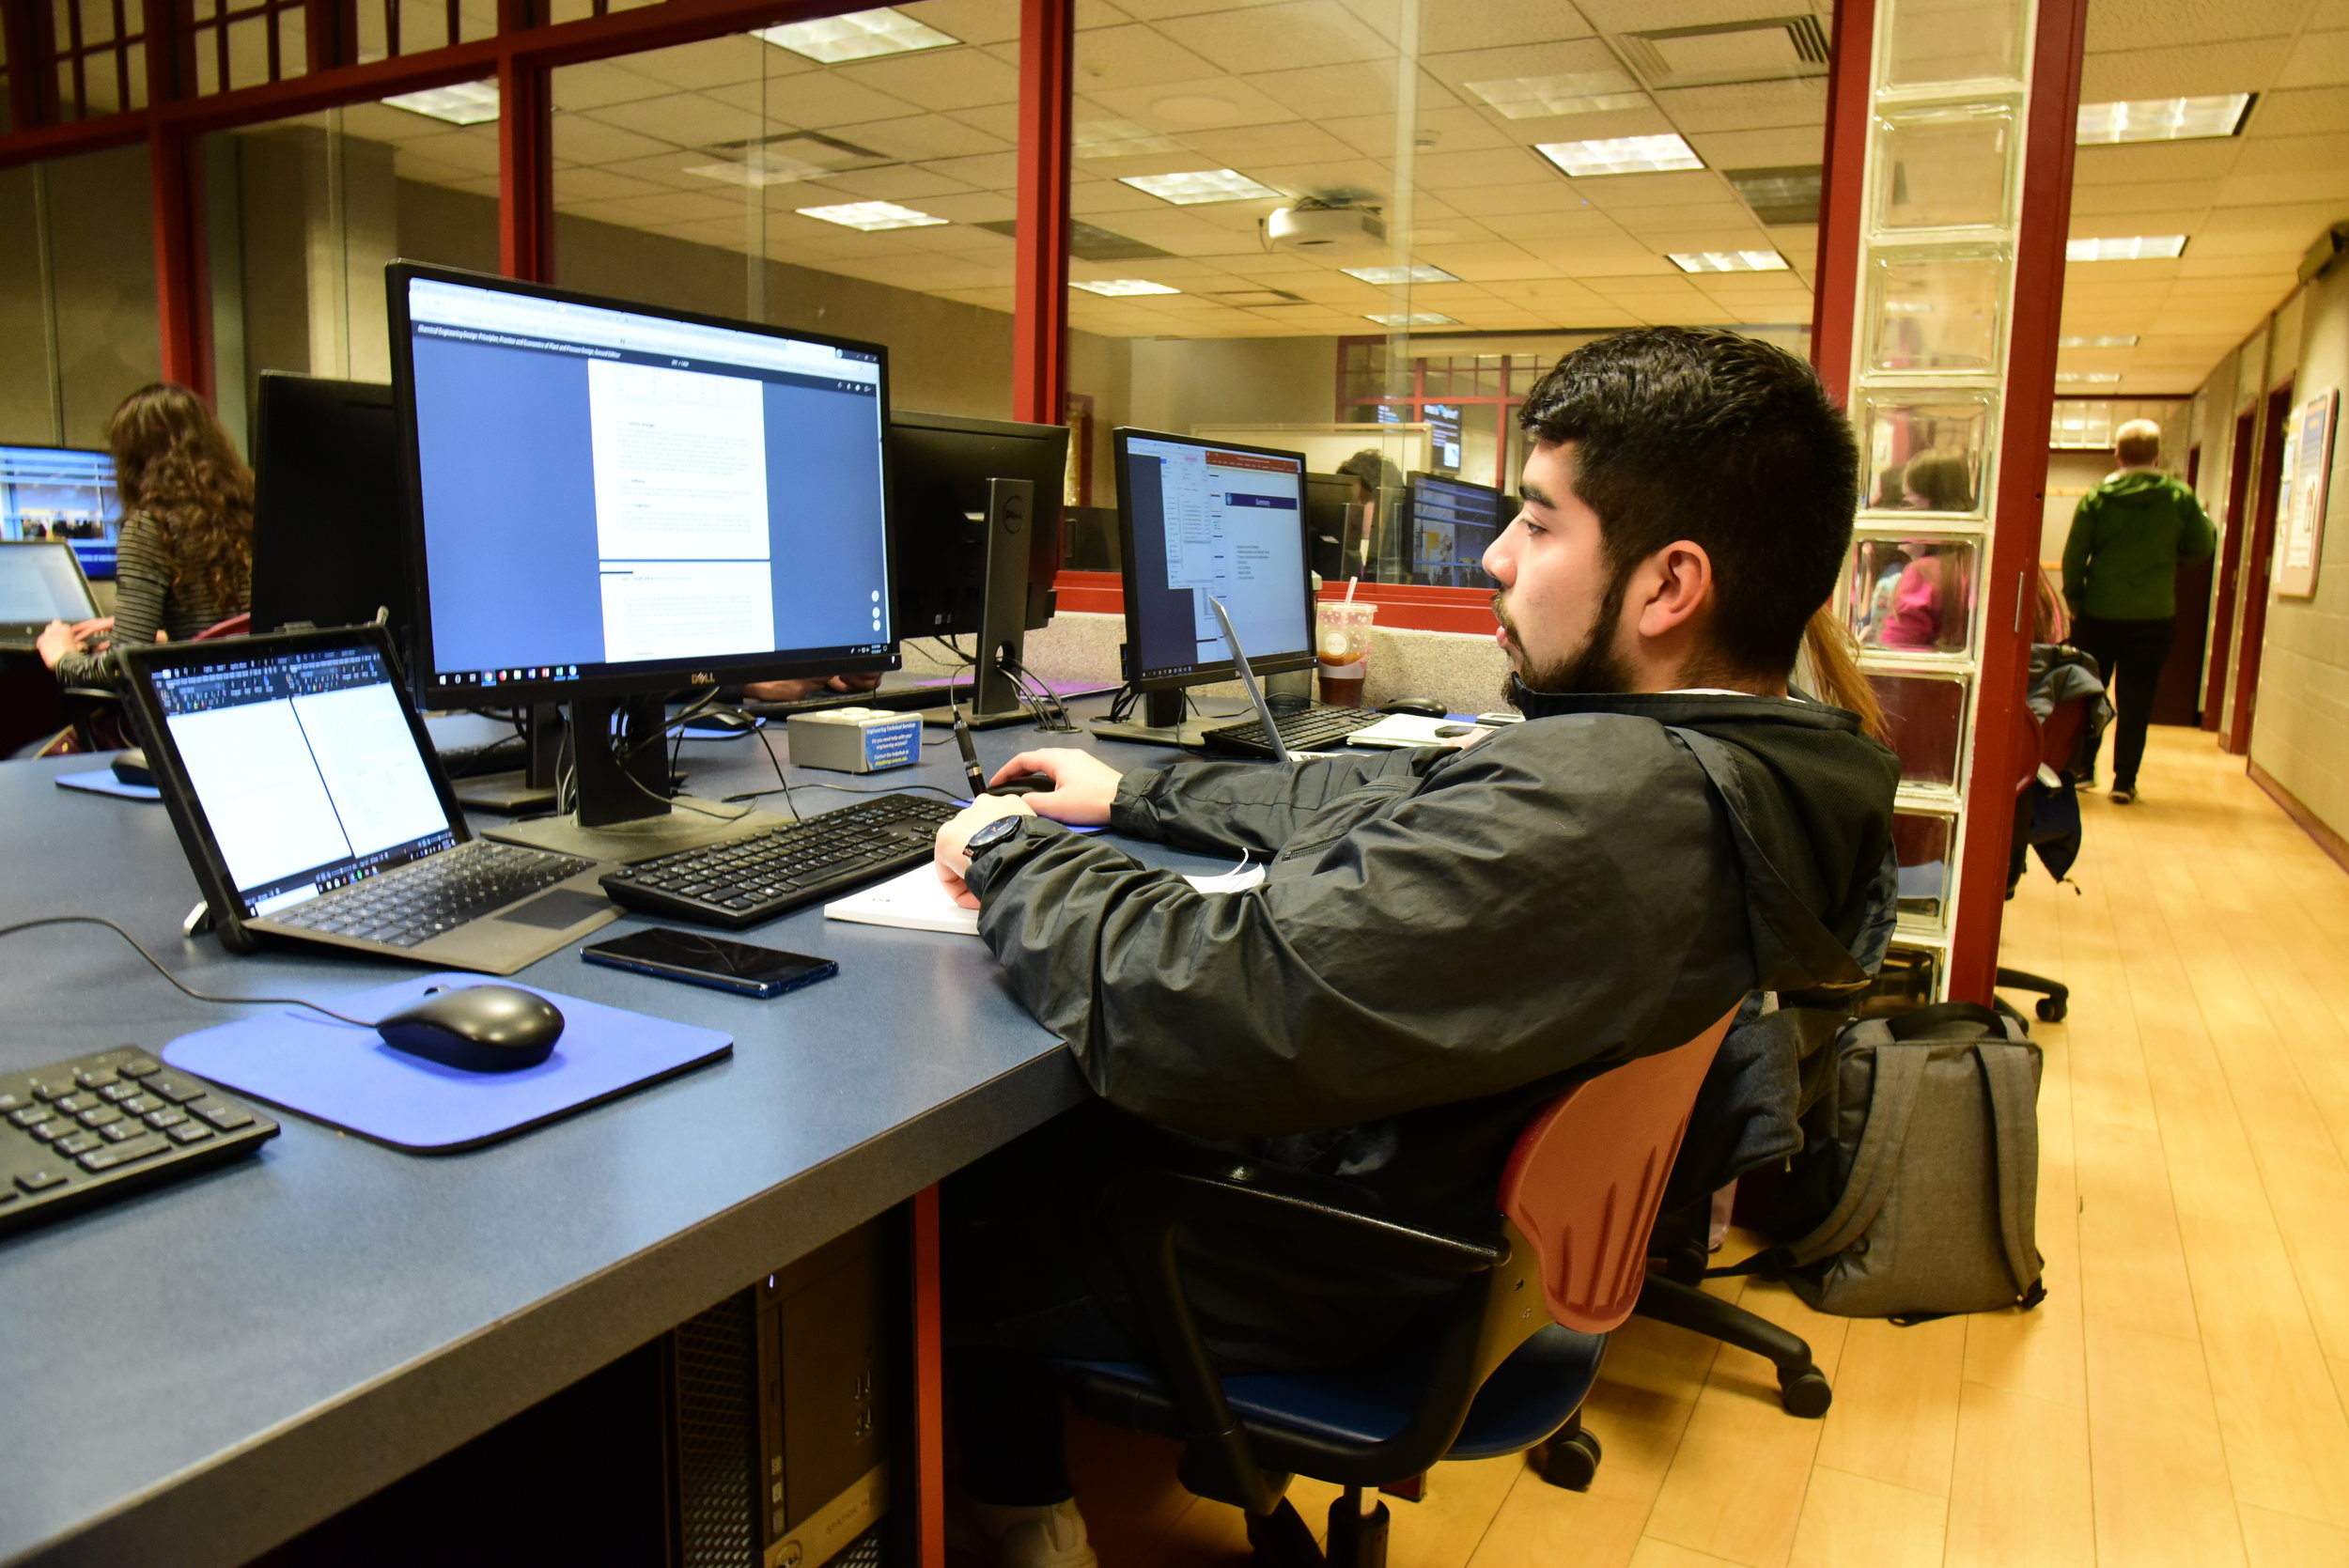 Even with UConn's resources accessing quality research can be difficult. (Photo by Kush Kumar/The Daily Campus)